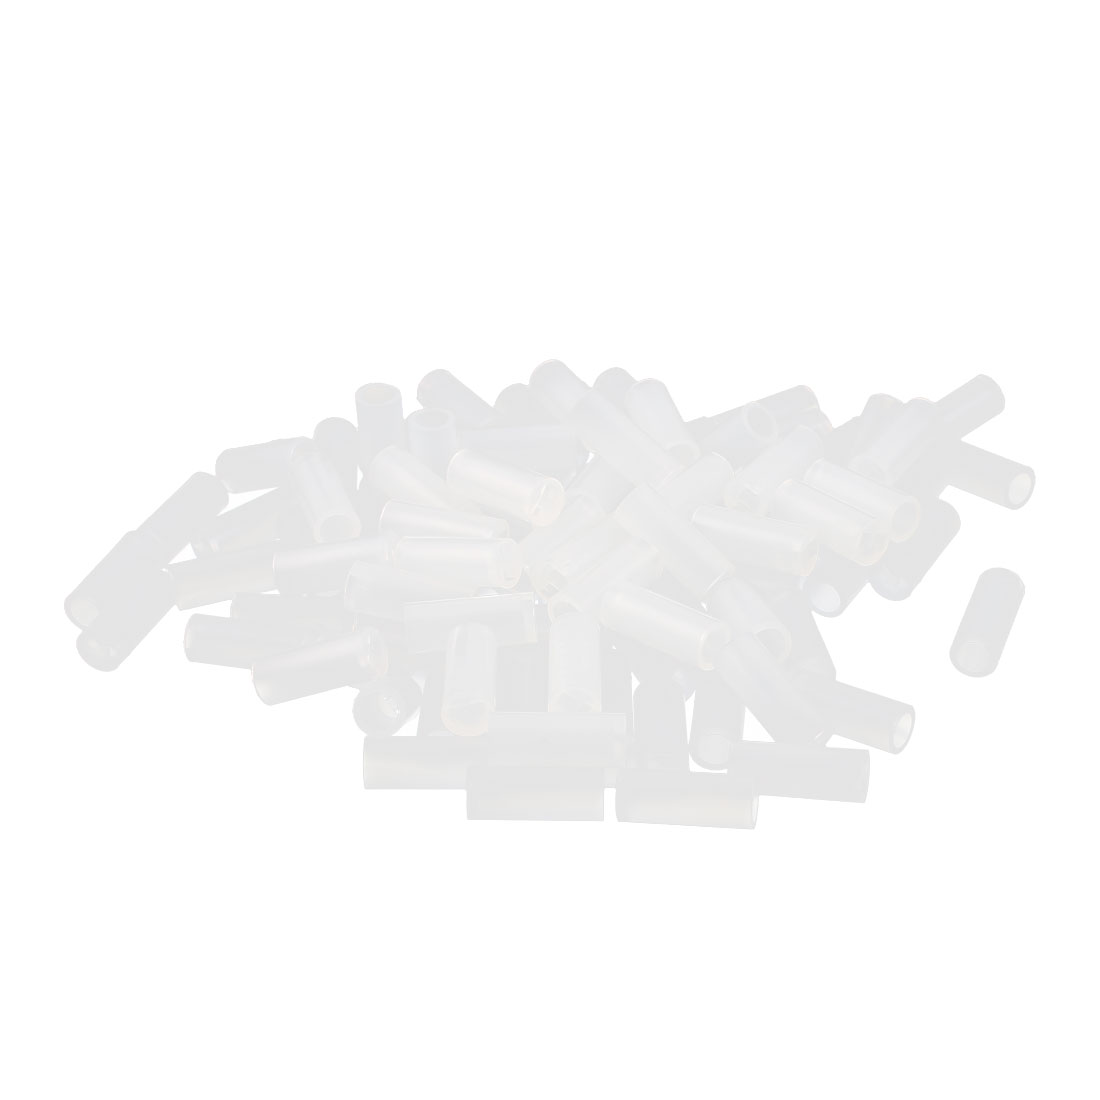 100 Pcs Nylon Cylinder LED Spacer Holder Support 3mm x 10mm Clear